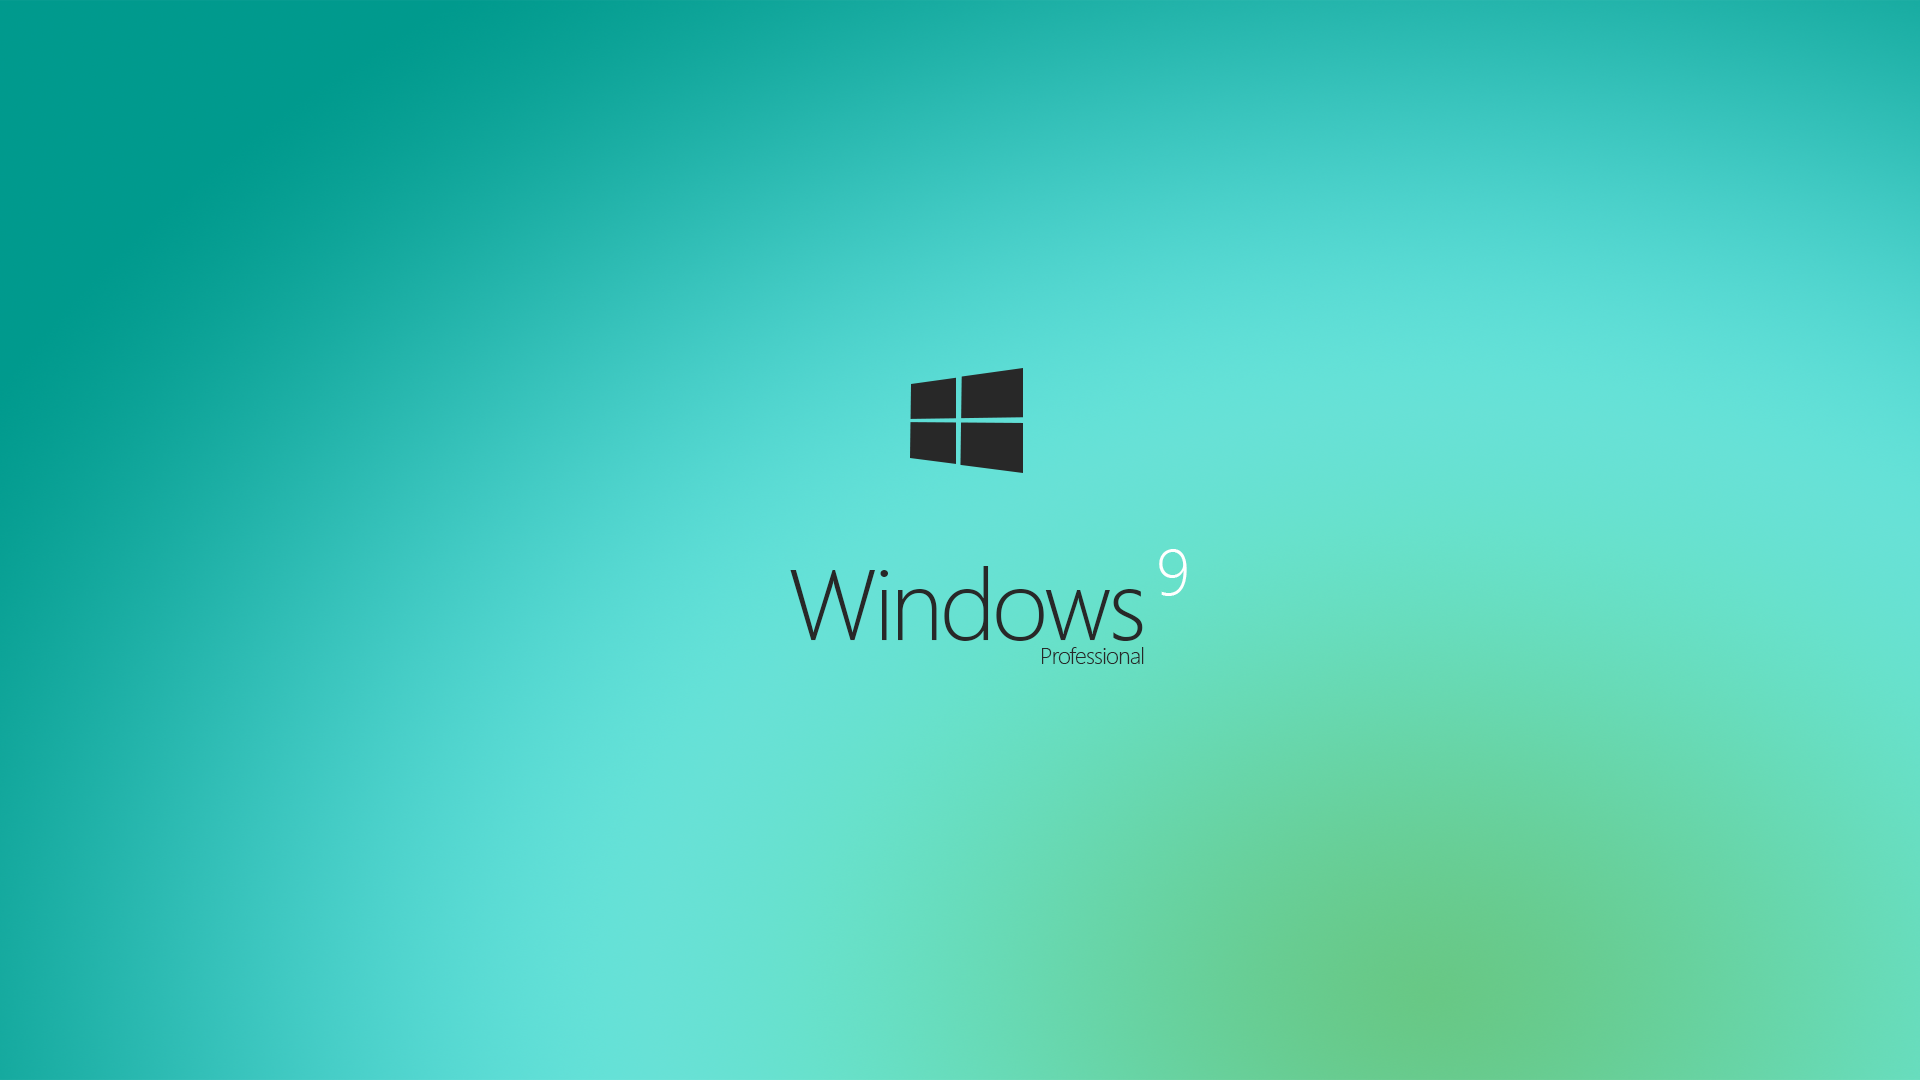 Top 20 Windows 9 wallpapers HD